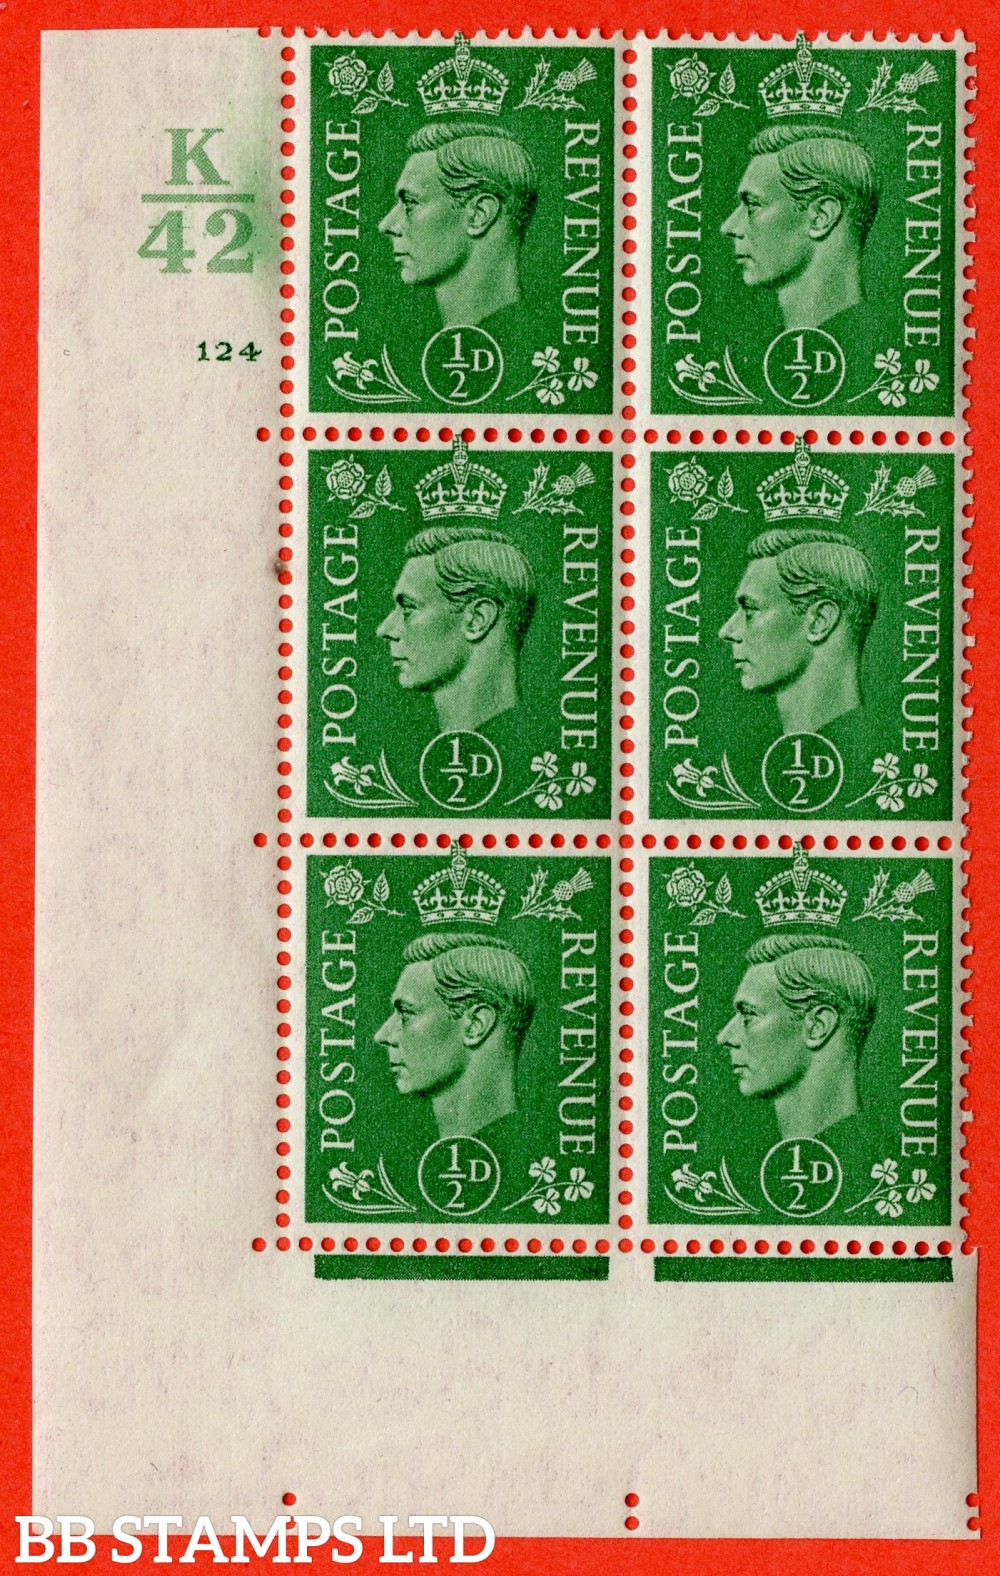 "SG. 485. Q2. ½d Pale Green. A very fine lightly mounted mint "" Control K42 cylinder 124 no dot "" block of 6 with perf type 5 E/I with marginal rule."